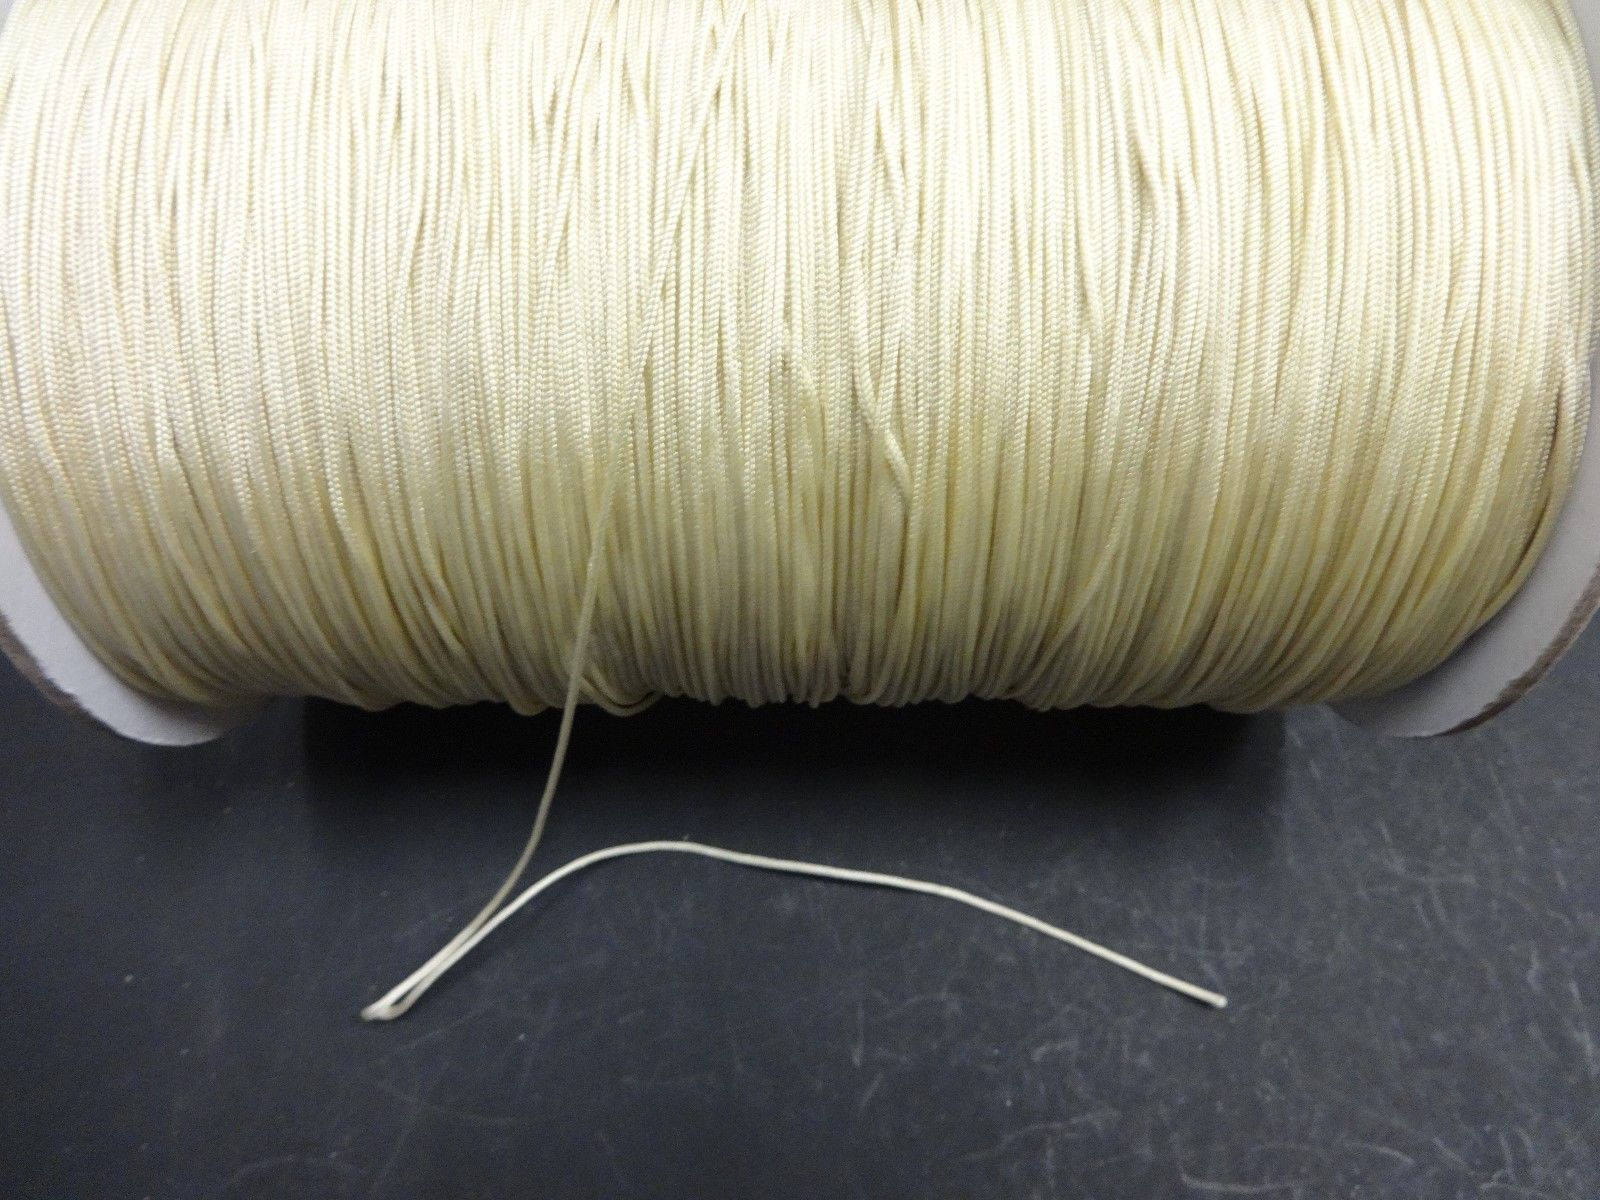 50 FEET:1.4mm Biscuit LIFT CORD for Blinds, Roman Shades and More